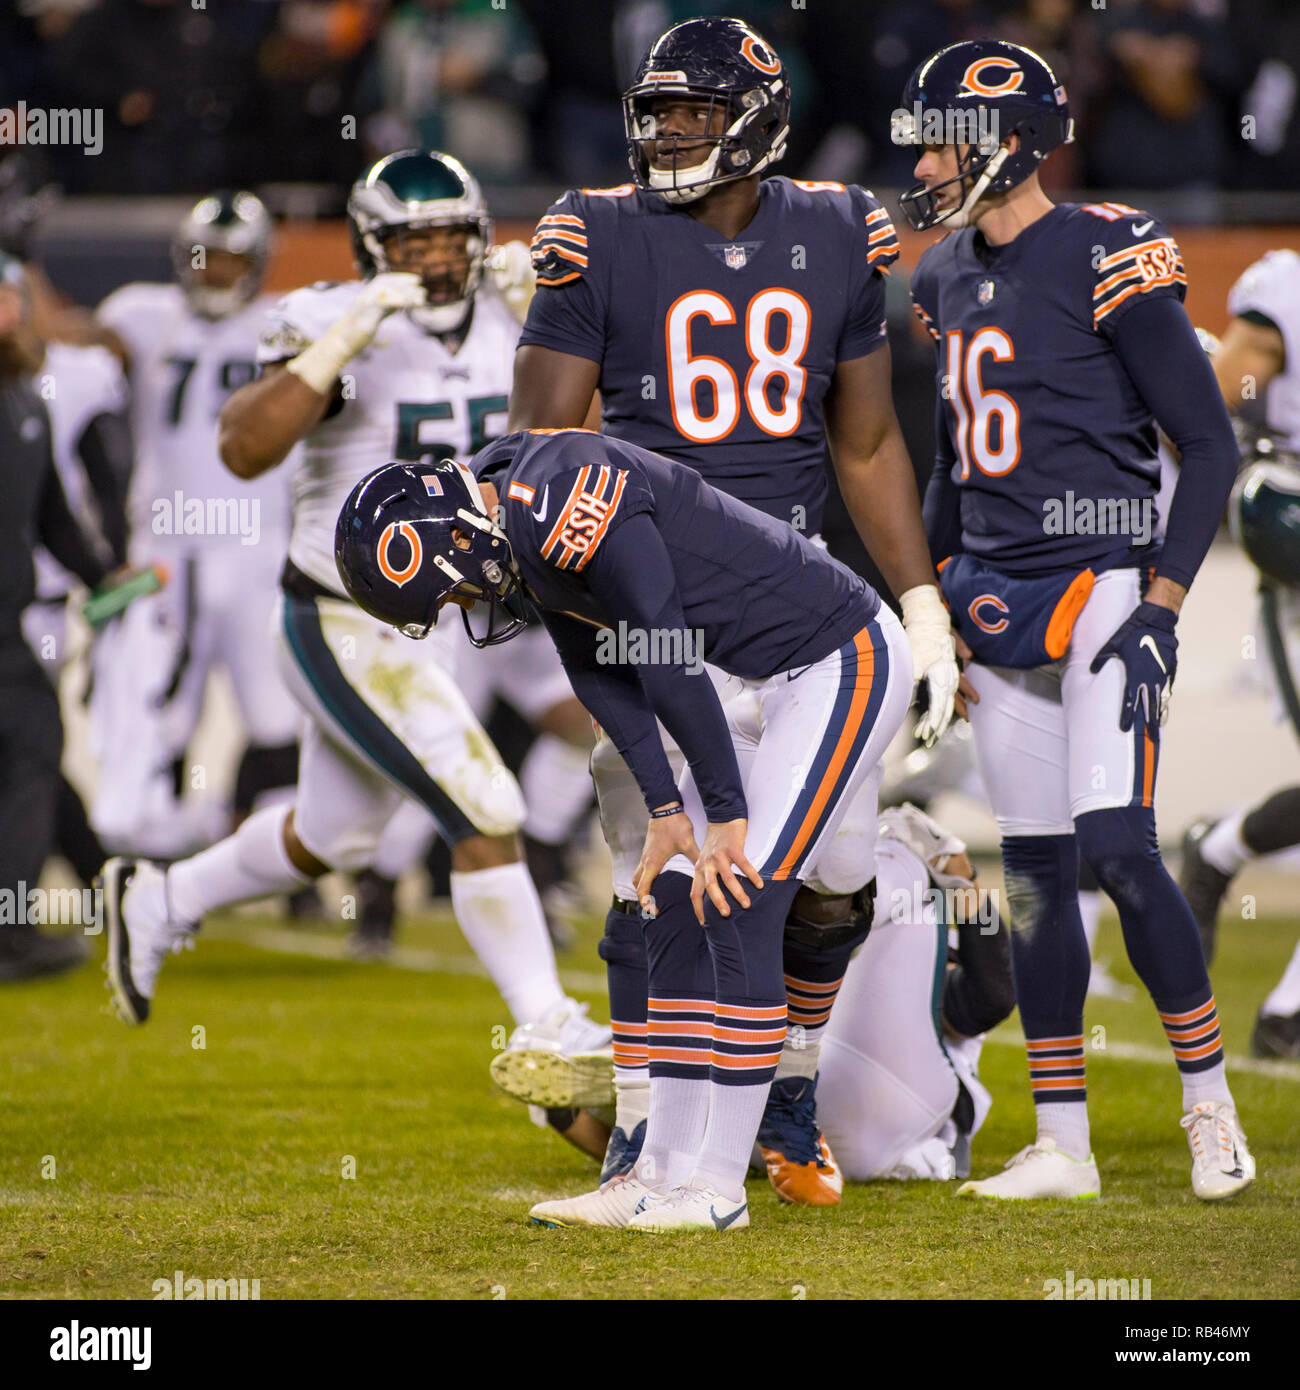 Chicago, Illinois, USA. 06th Jan, 2019. - Bears Kicker #1 Cody Parkey, #68 James Daniels and #16 Pat O'Donnell react after missing the game winning field goal during the NFL Playoff Game between the Philadelphia Eagles and Chicago Bears at Soldier Field in Chicago, IL. Photographer: Mike Wulf Credit: csm/Alamy Live News - Stock Image